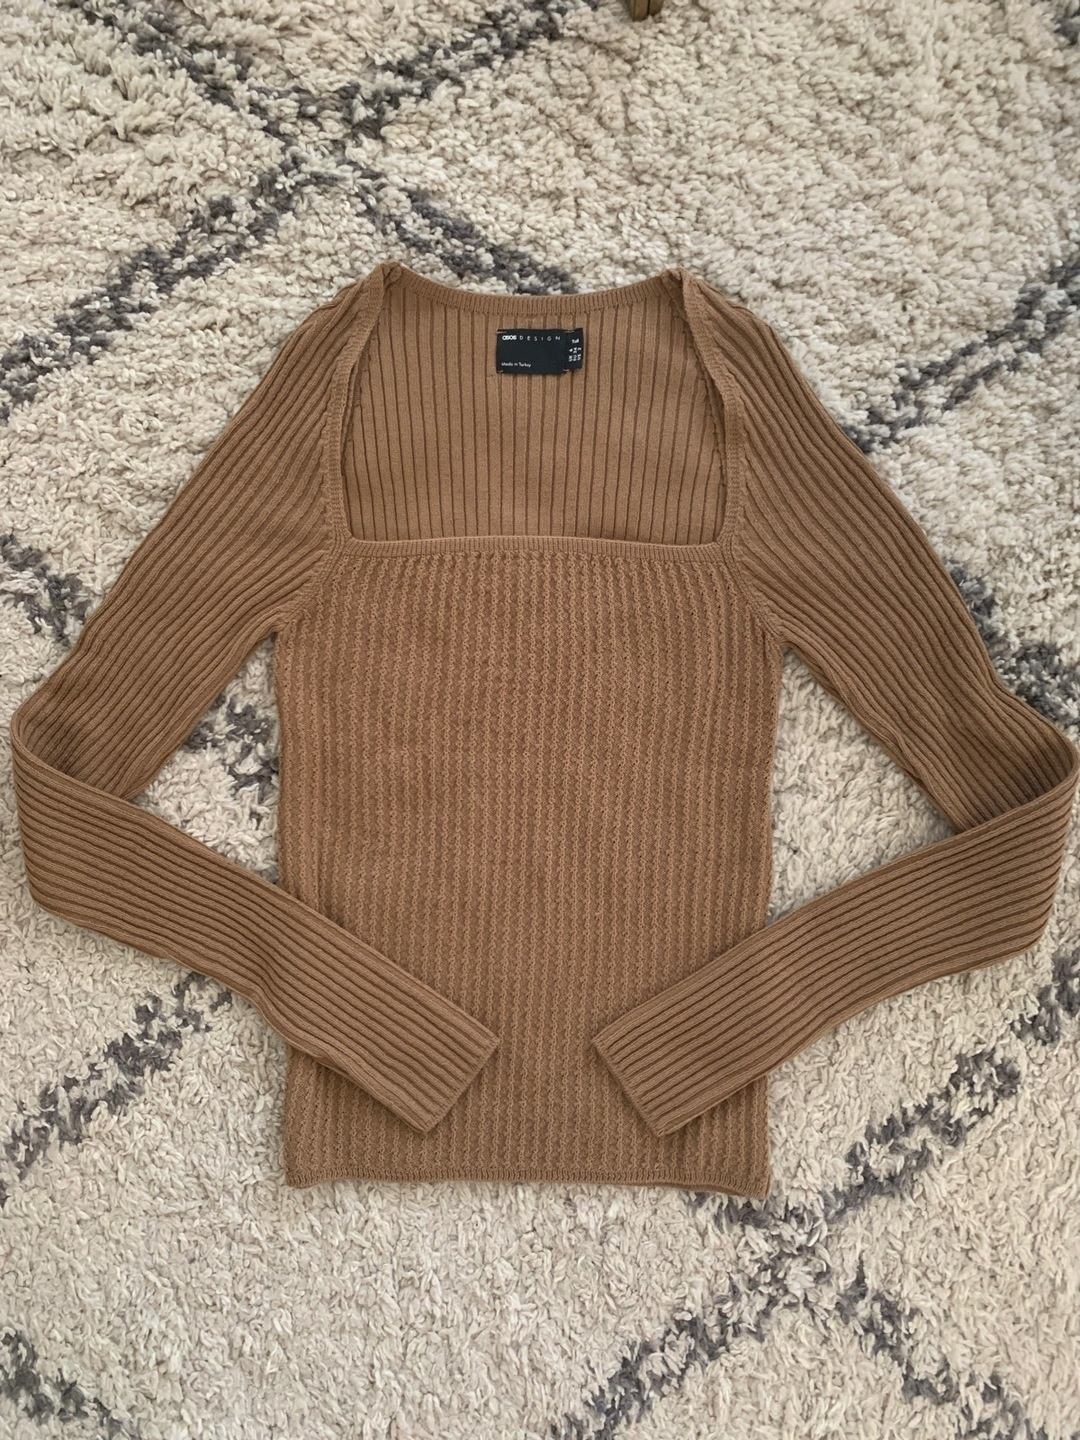 Women's jumpers & cardigans - ASOS photo 1